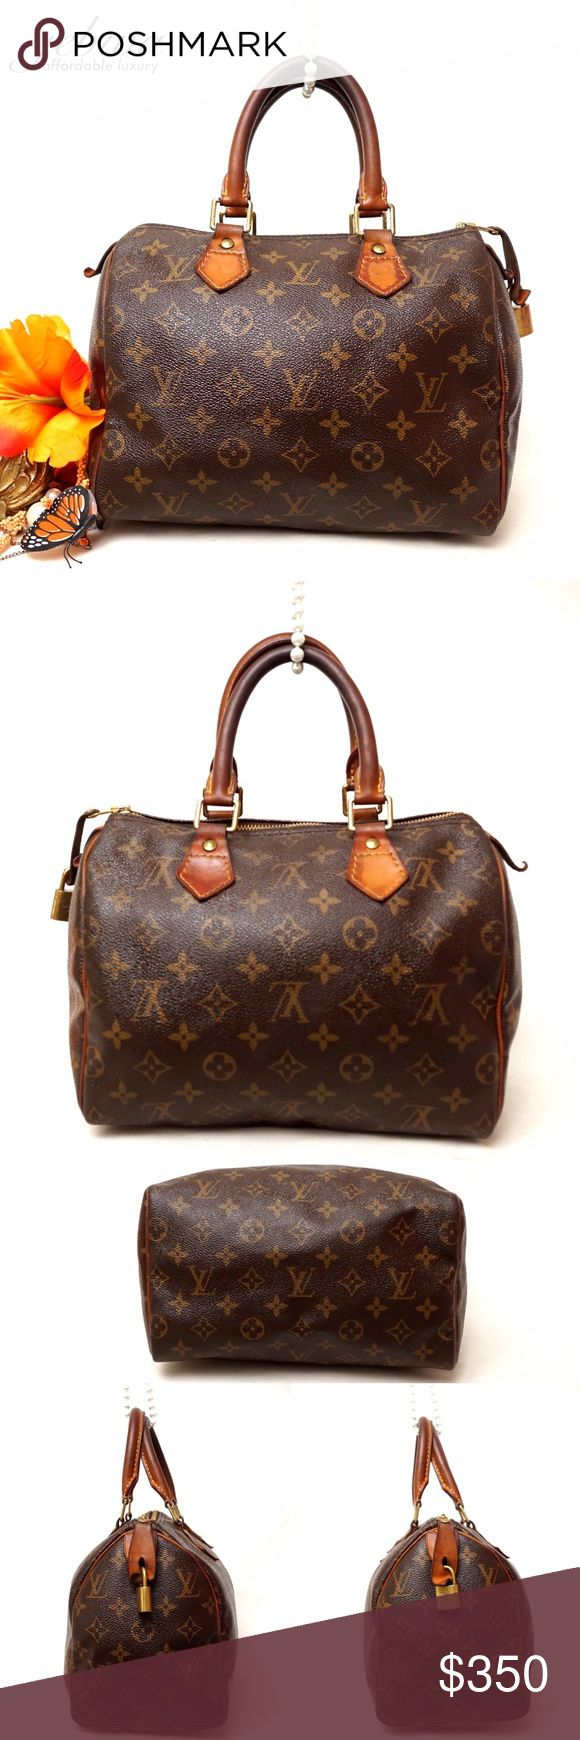 """AUTH LOUIS VUITTON SPEEDY 25 SATCHEL VINTAGE BAG Adorable LV SPEEDY. Preloved in very good vintage condition. Leather edges show some discoloration. Corners are in good condition. No rips stains. Key included. Inside has some stains. This is one of the most beautiful thing your closet will have. Size 10,5""""x7,5""""x6"""". Pet smoke free home.  AUTHENTIC-PATENT LEATHER -FAST SHIPPING!  ⏳My items sell fast. Get them before gone.⌛️Please see my other listings. Bundle & save.. I have over 200 different…"""